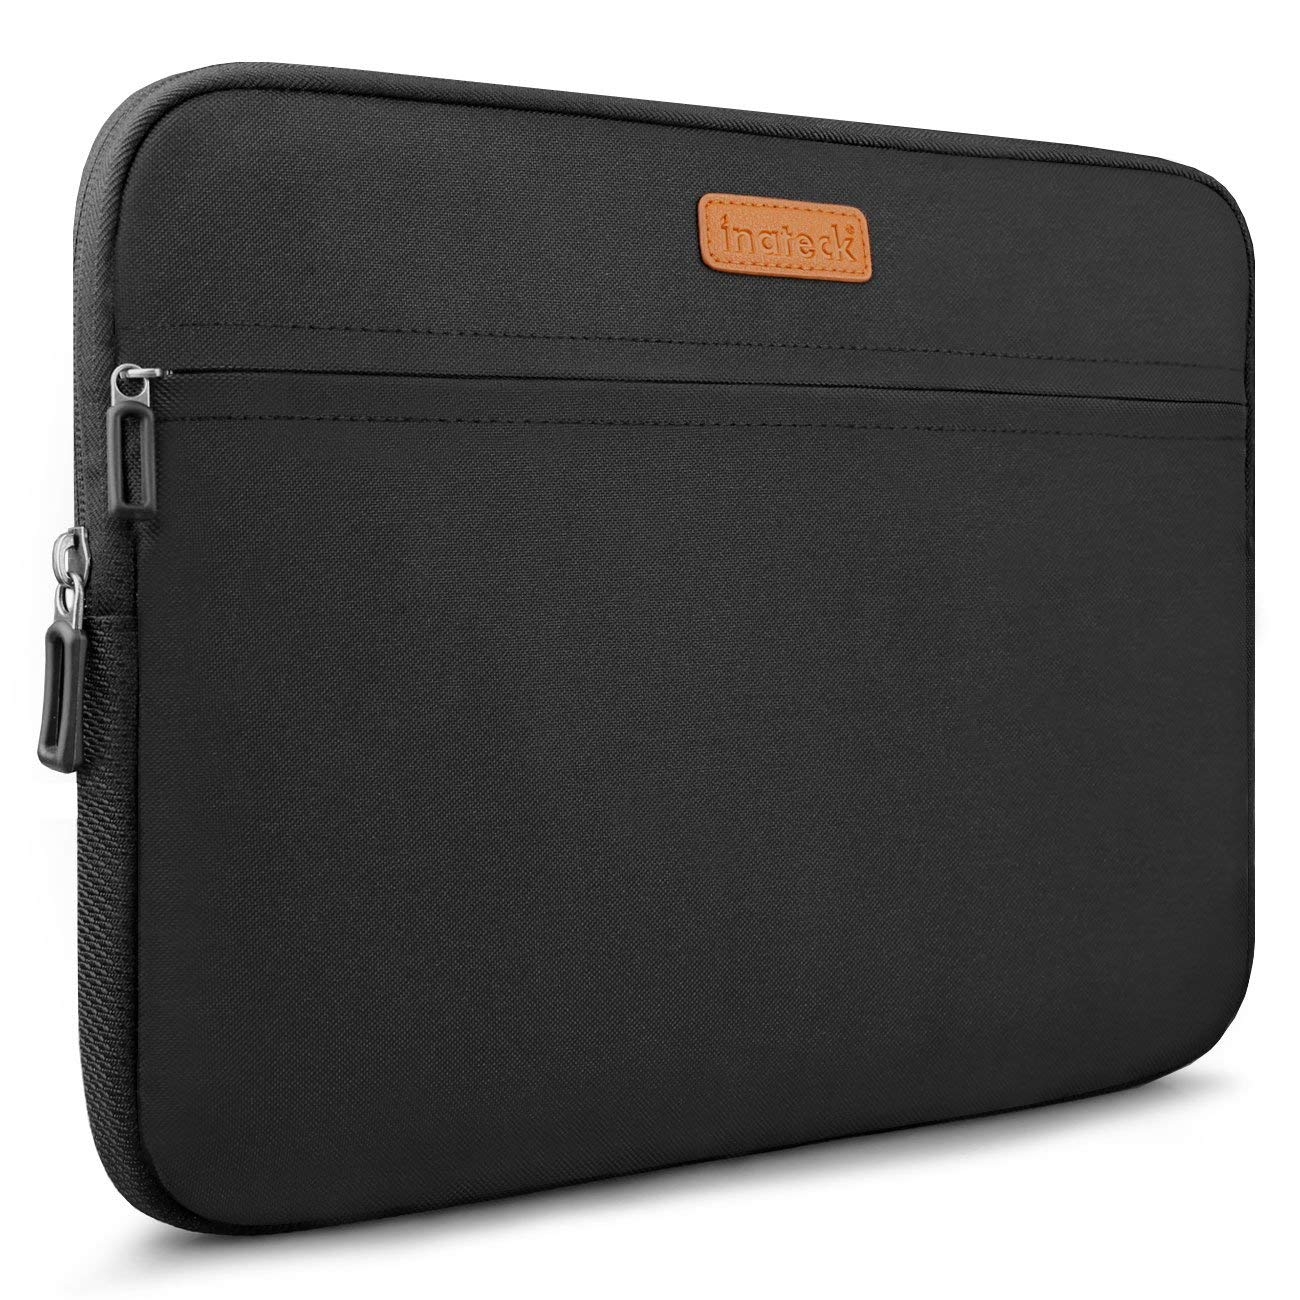 Inateck 13 – 13.3″ spill resistant laptop sleeve for Macbook Air / Dell XPS